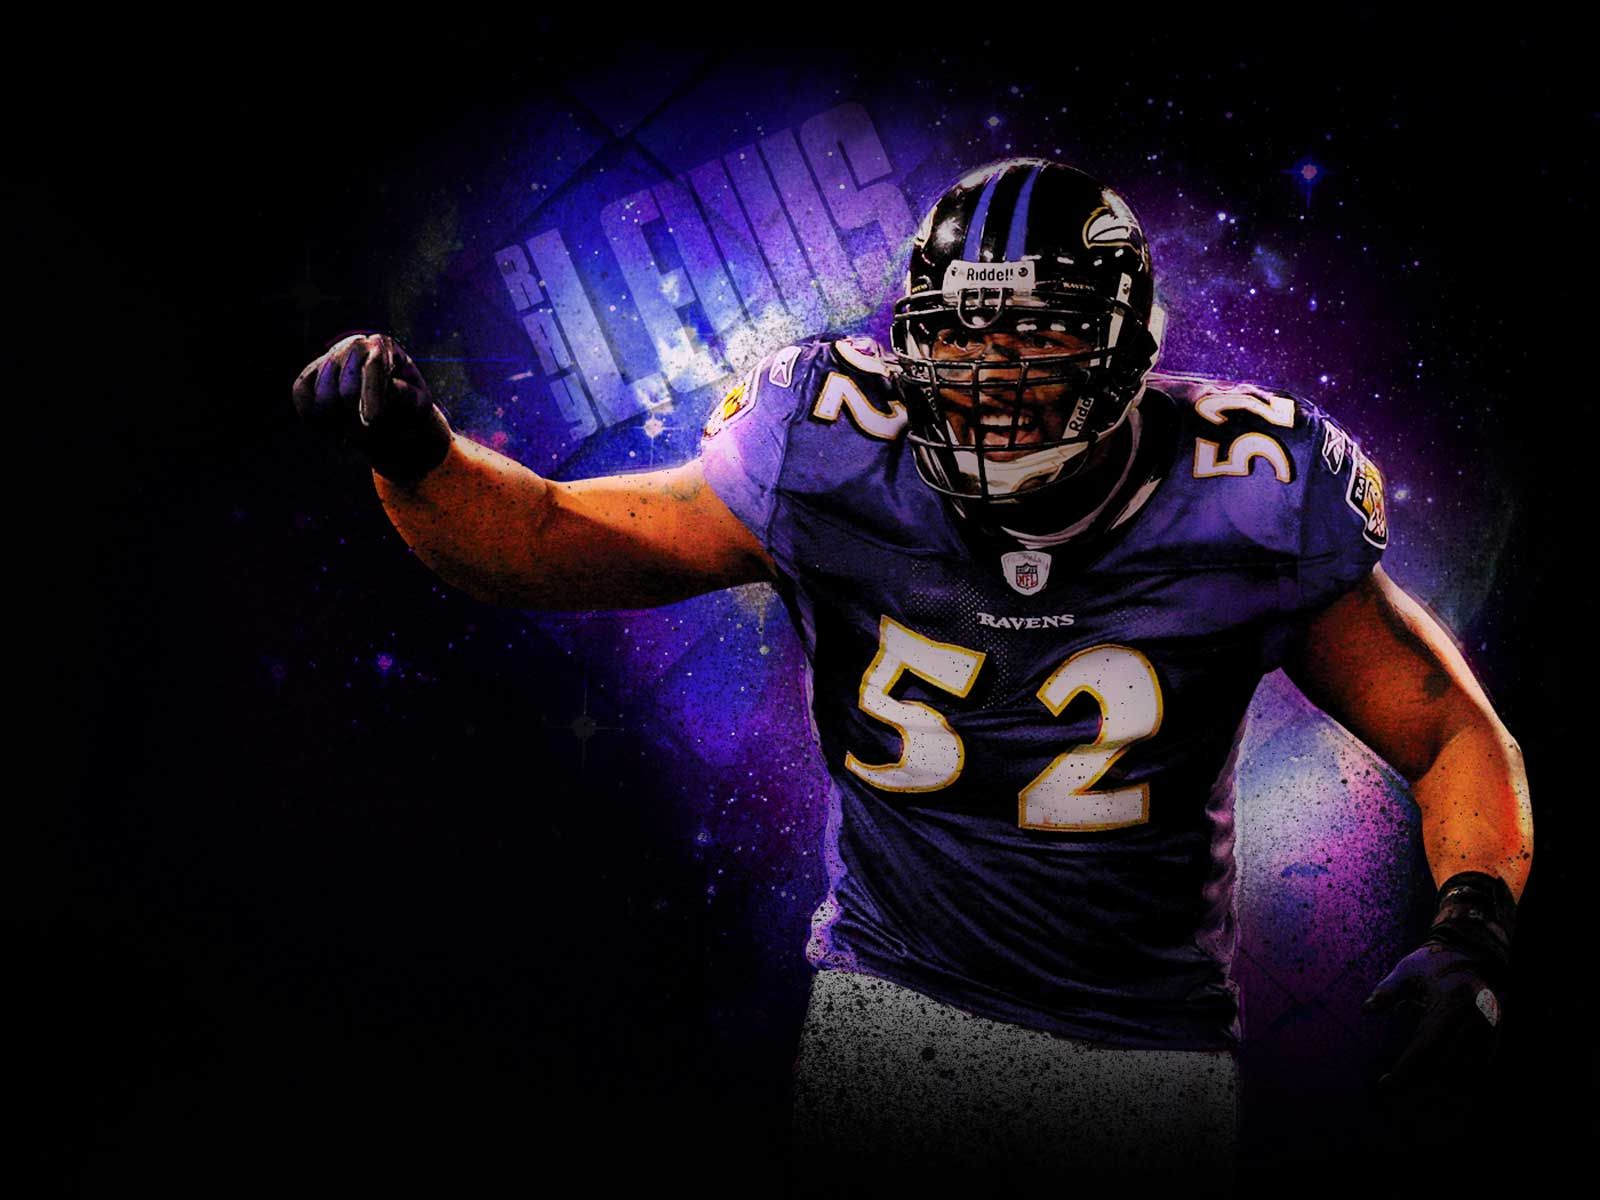 Wallpapers By Wicked Shadows Baltimore Ravens Super Bowl XLVII 1920x1200 Wallpaper Ray LewisFootball